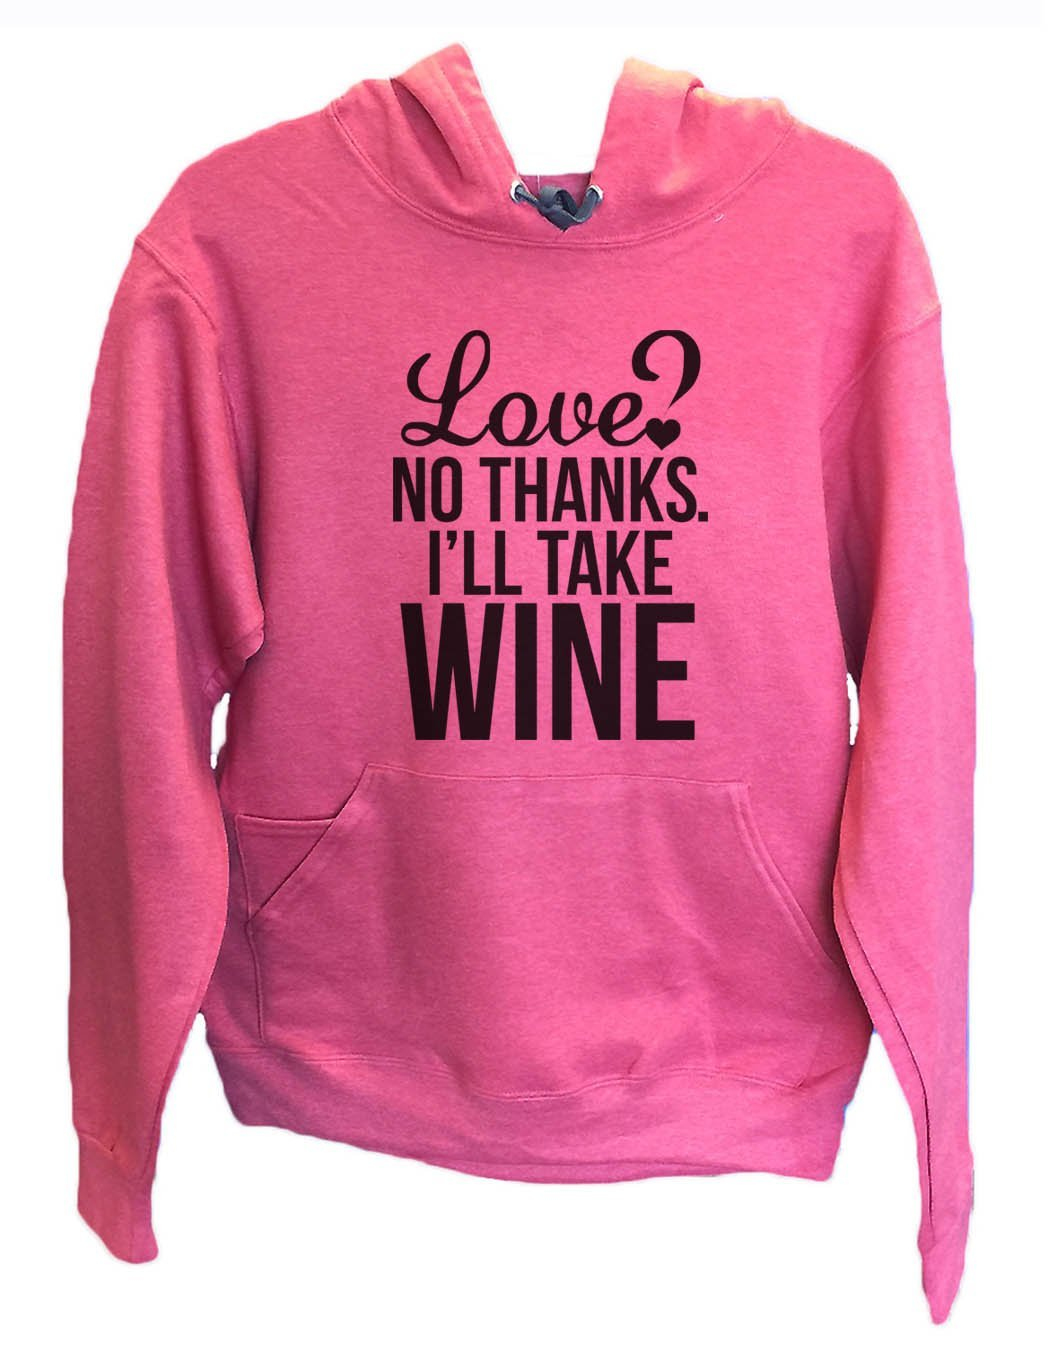 UNISEX HOODIE - Love? No Thanks. I'Ll Take Wine - FUNNY MENS AND WOMENS HOODED SWEATSHIRTS - 2137 Funny Shirt Small / Cranberry Red